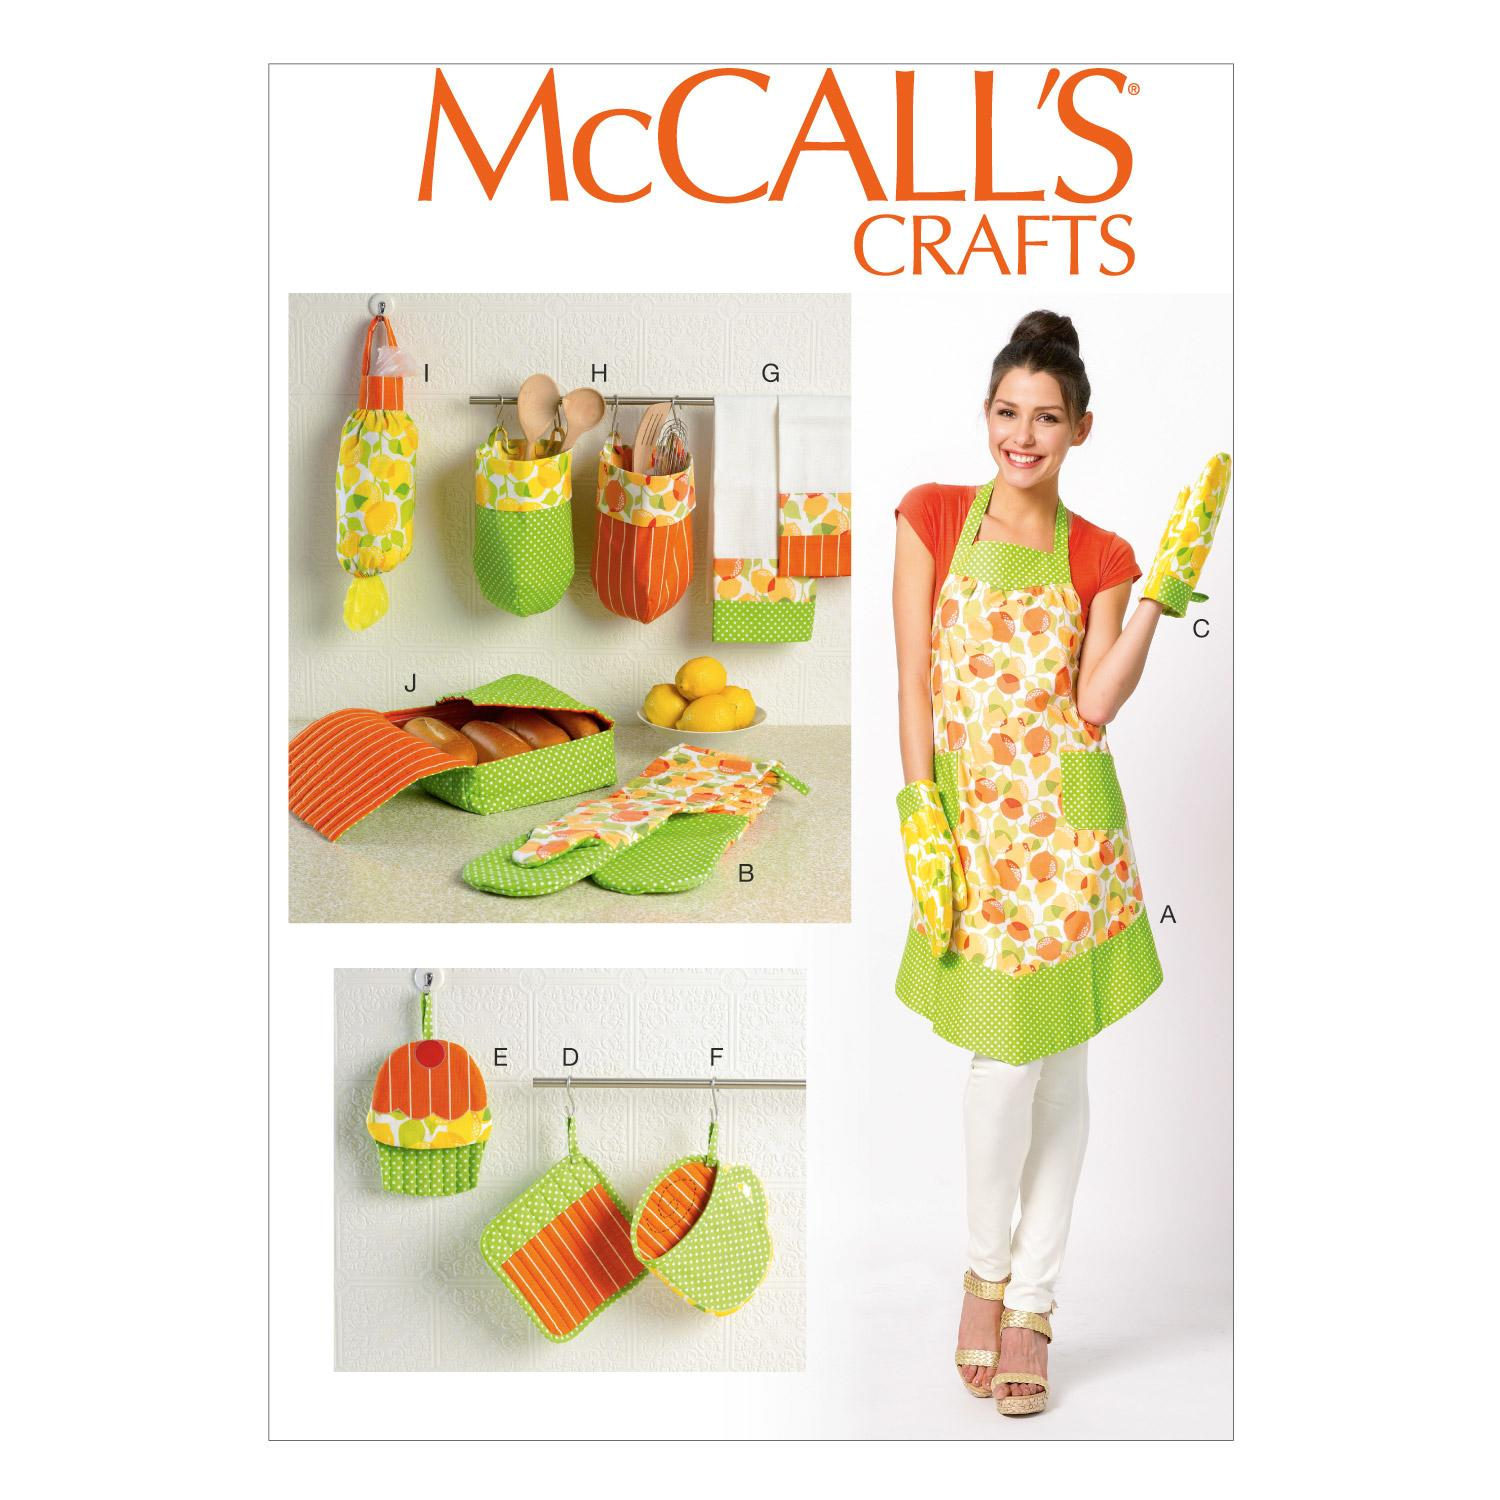 McCalls M6978 Aprons, Crafts/Dolls/Pets, Home Decorating